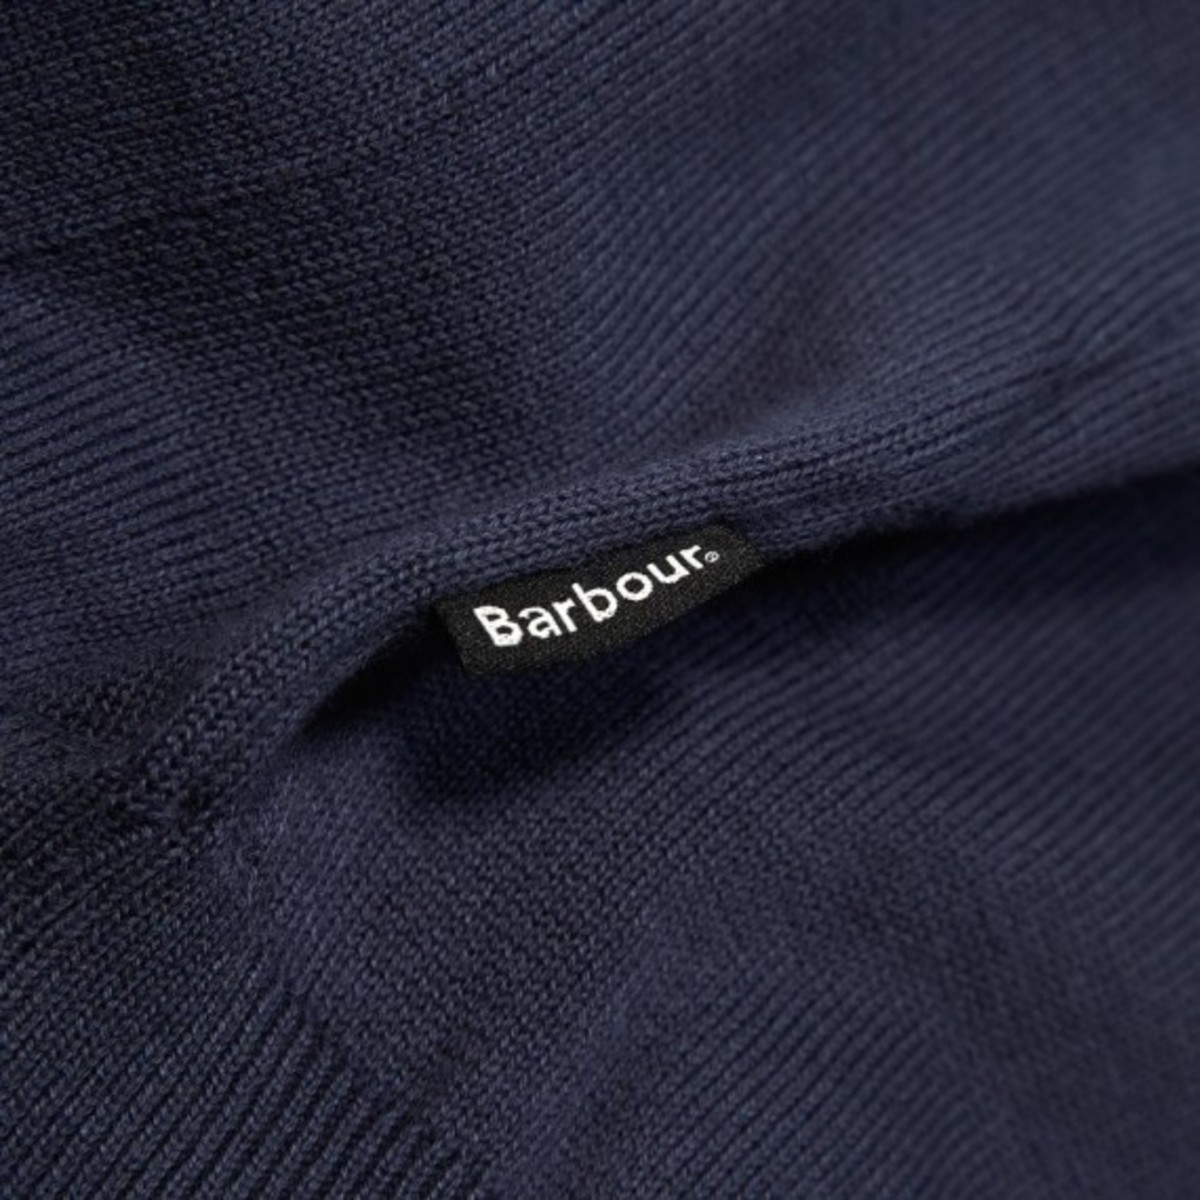 barbour-pheasant-collection-12